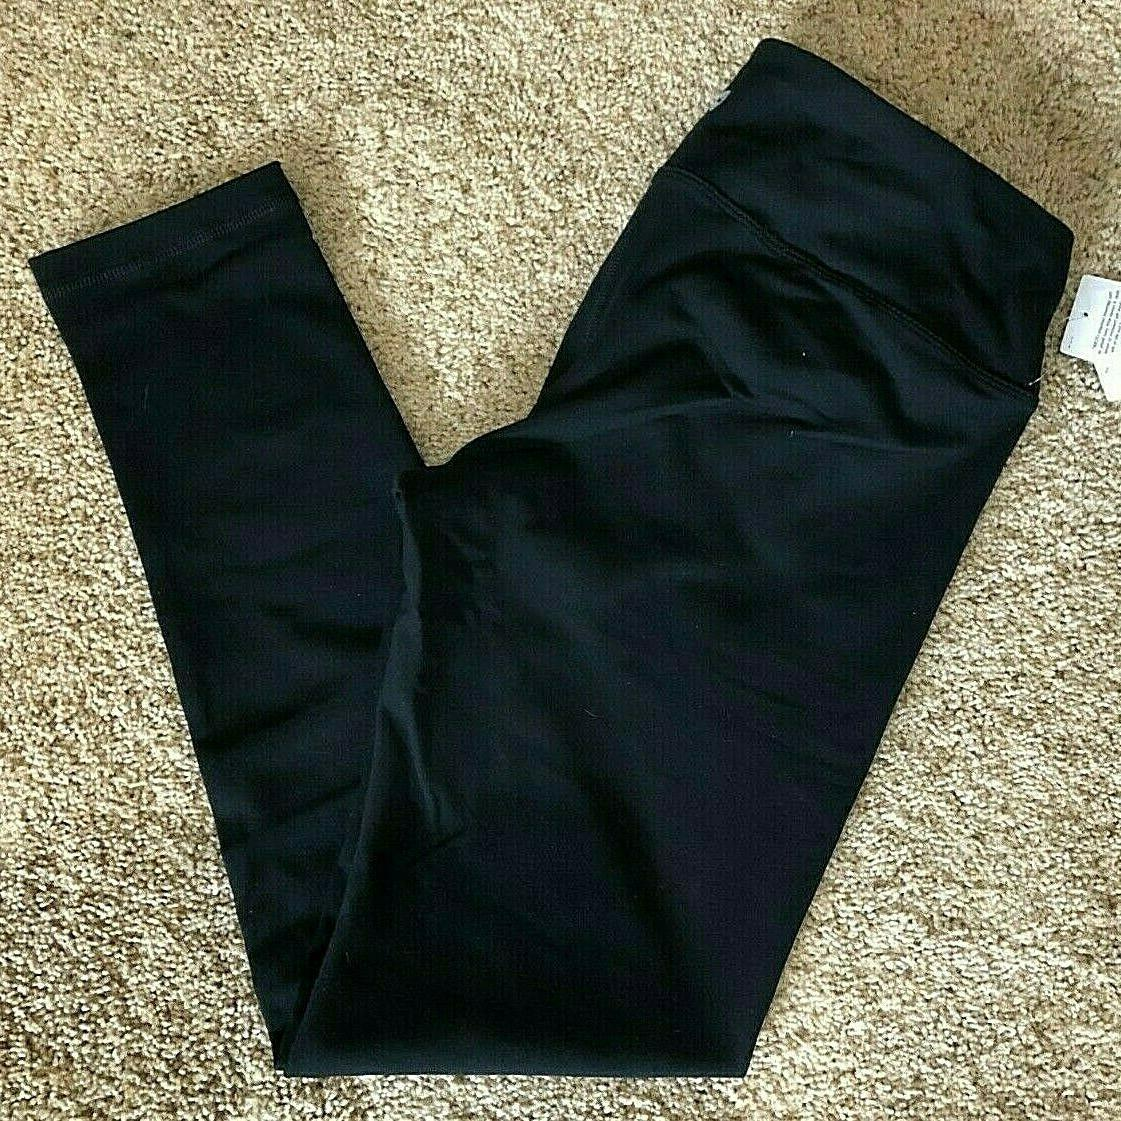 nwt womens black 90 degree by active